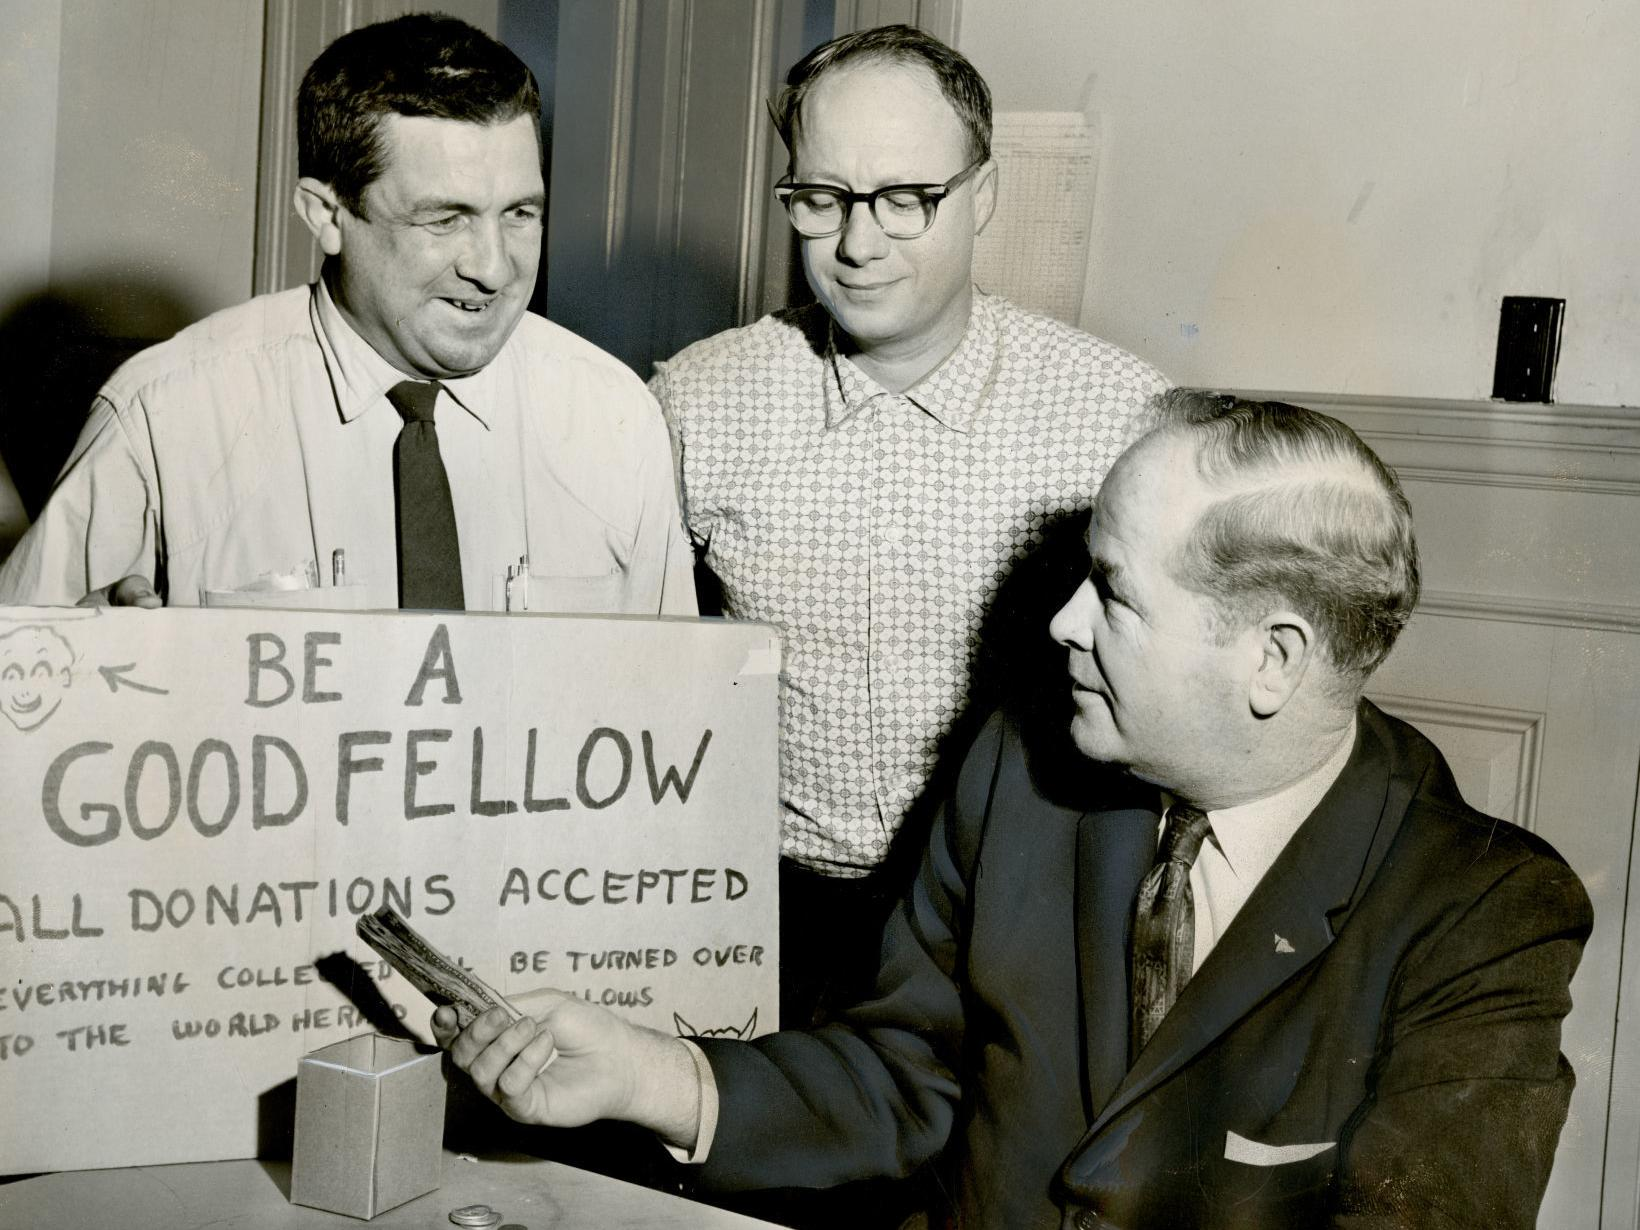 Goodfellows has provided over $16 million in aid, with $6 million from the past five years